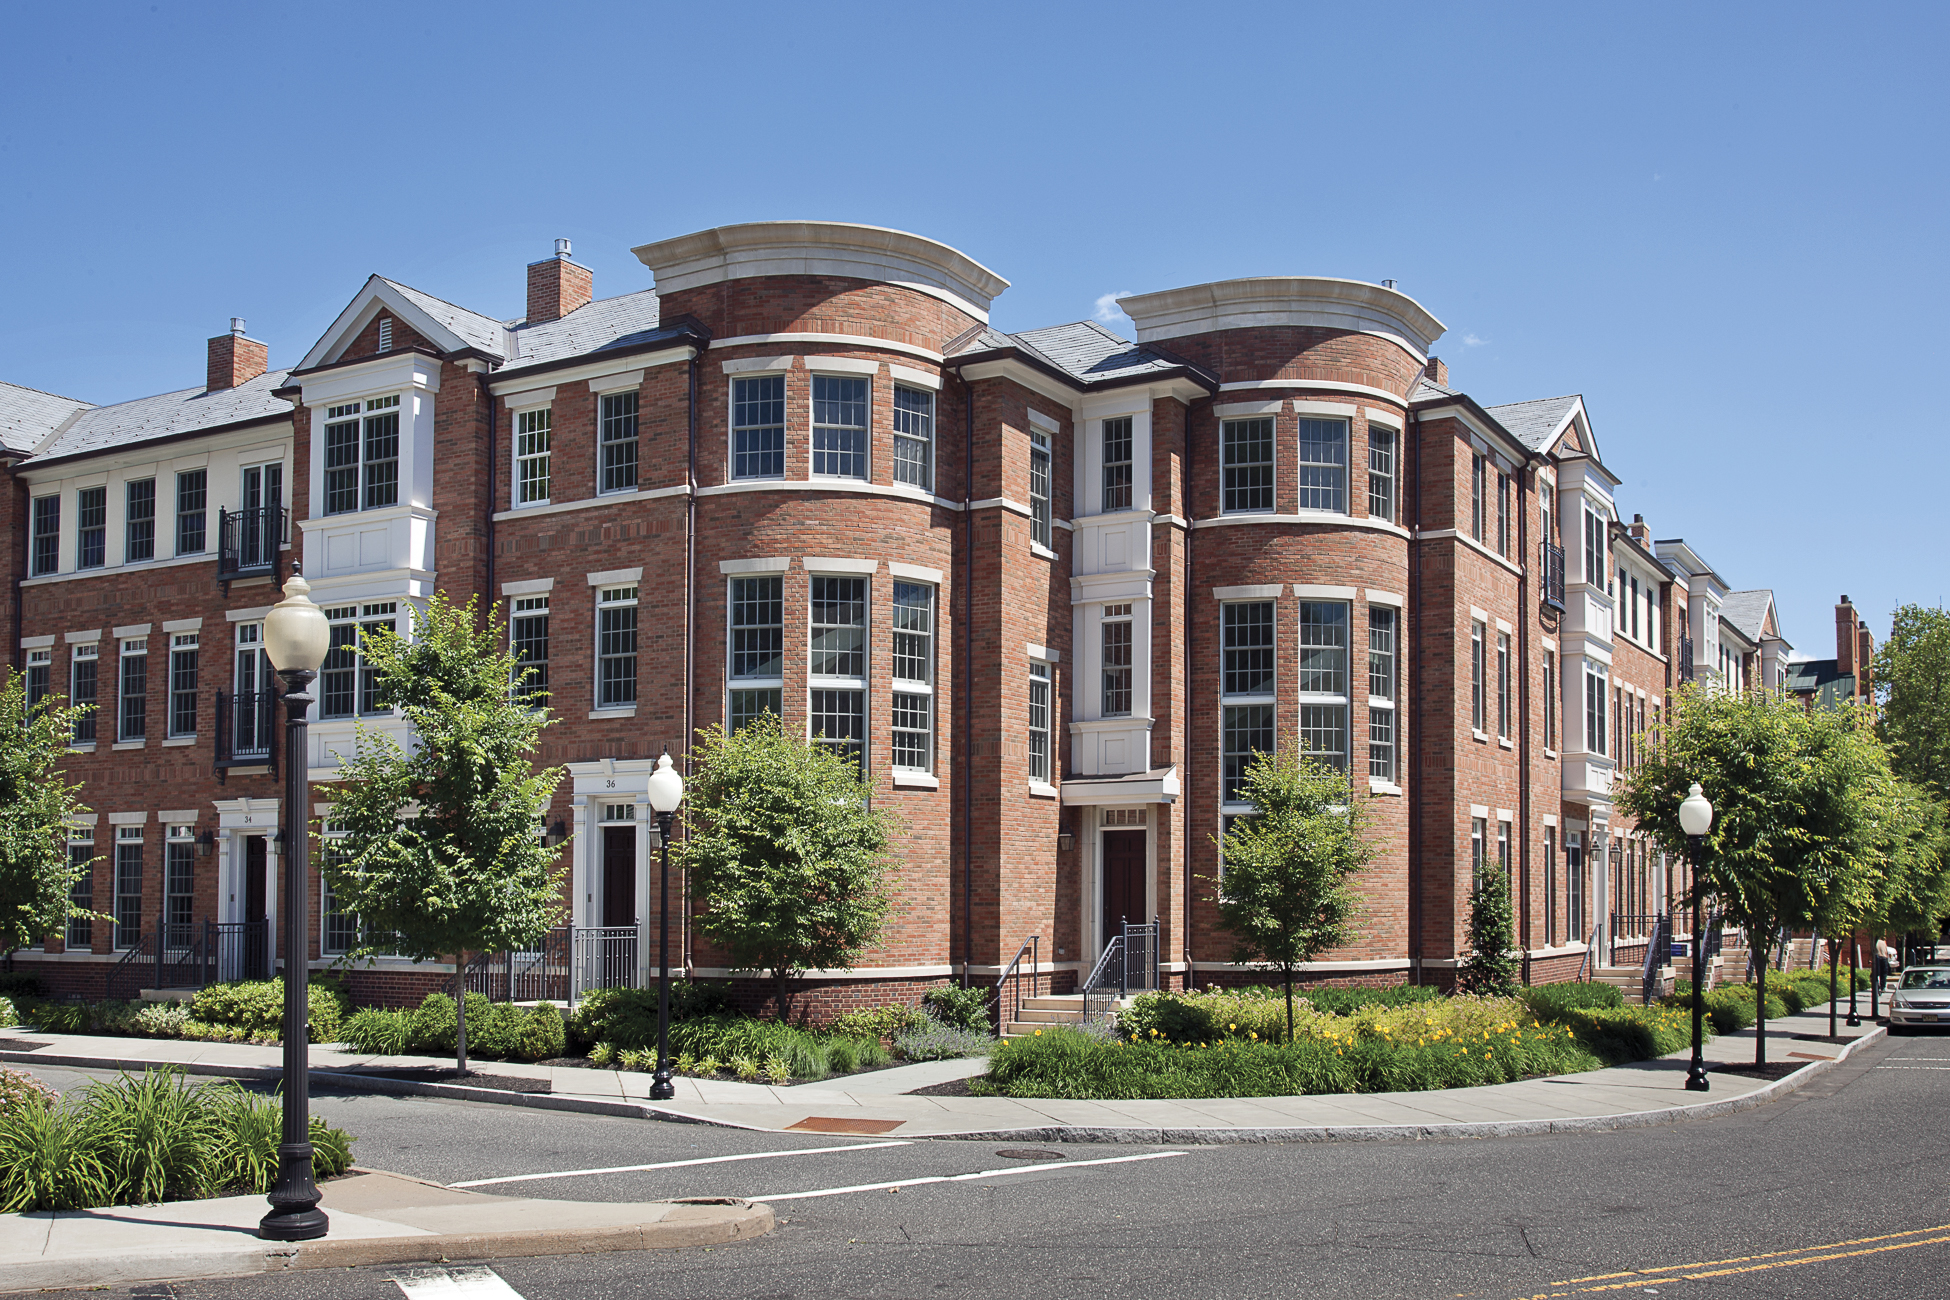 Villetta a schiera per Vendita alle ore Luxurious Townhome in the Heart of Princeton 28 Paul Robeson Place Princeton, New Jersey, 08540 Stati Uniti